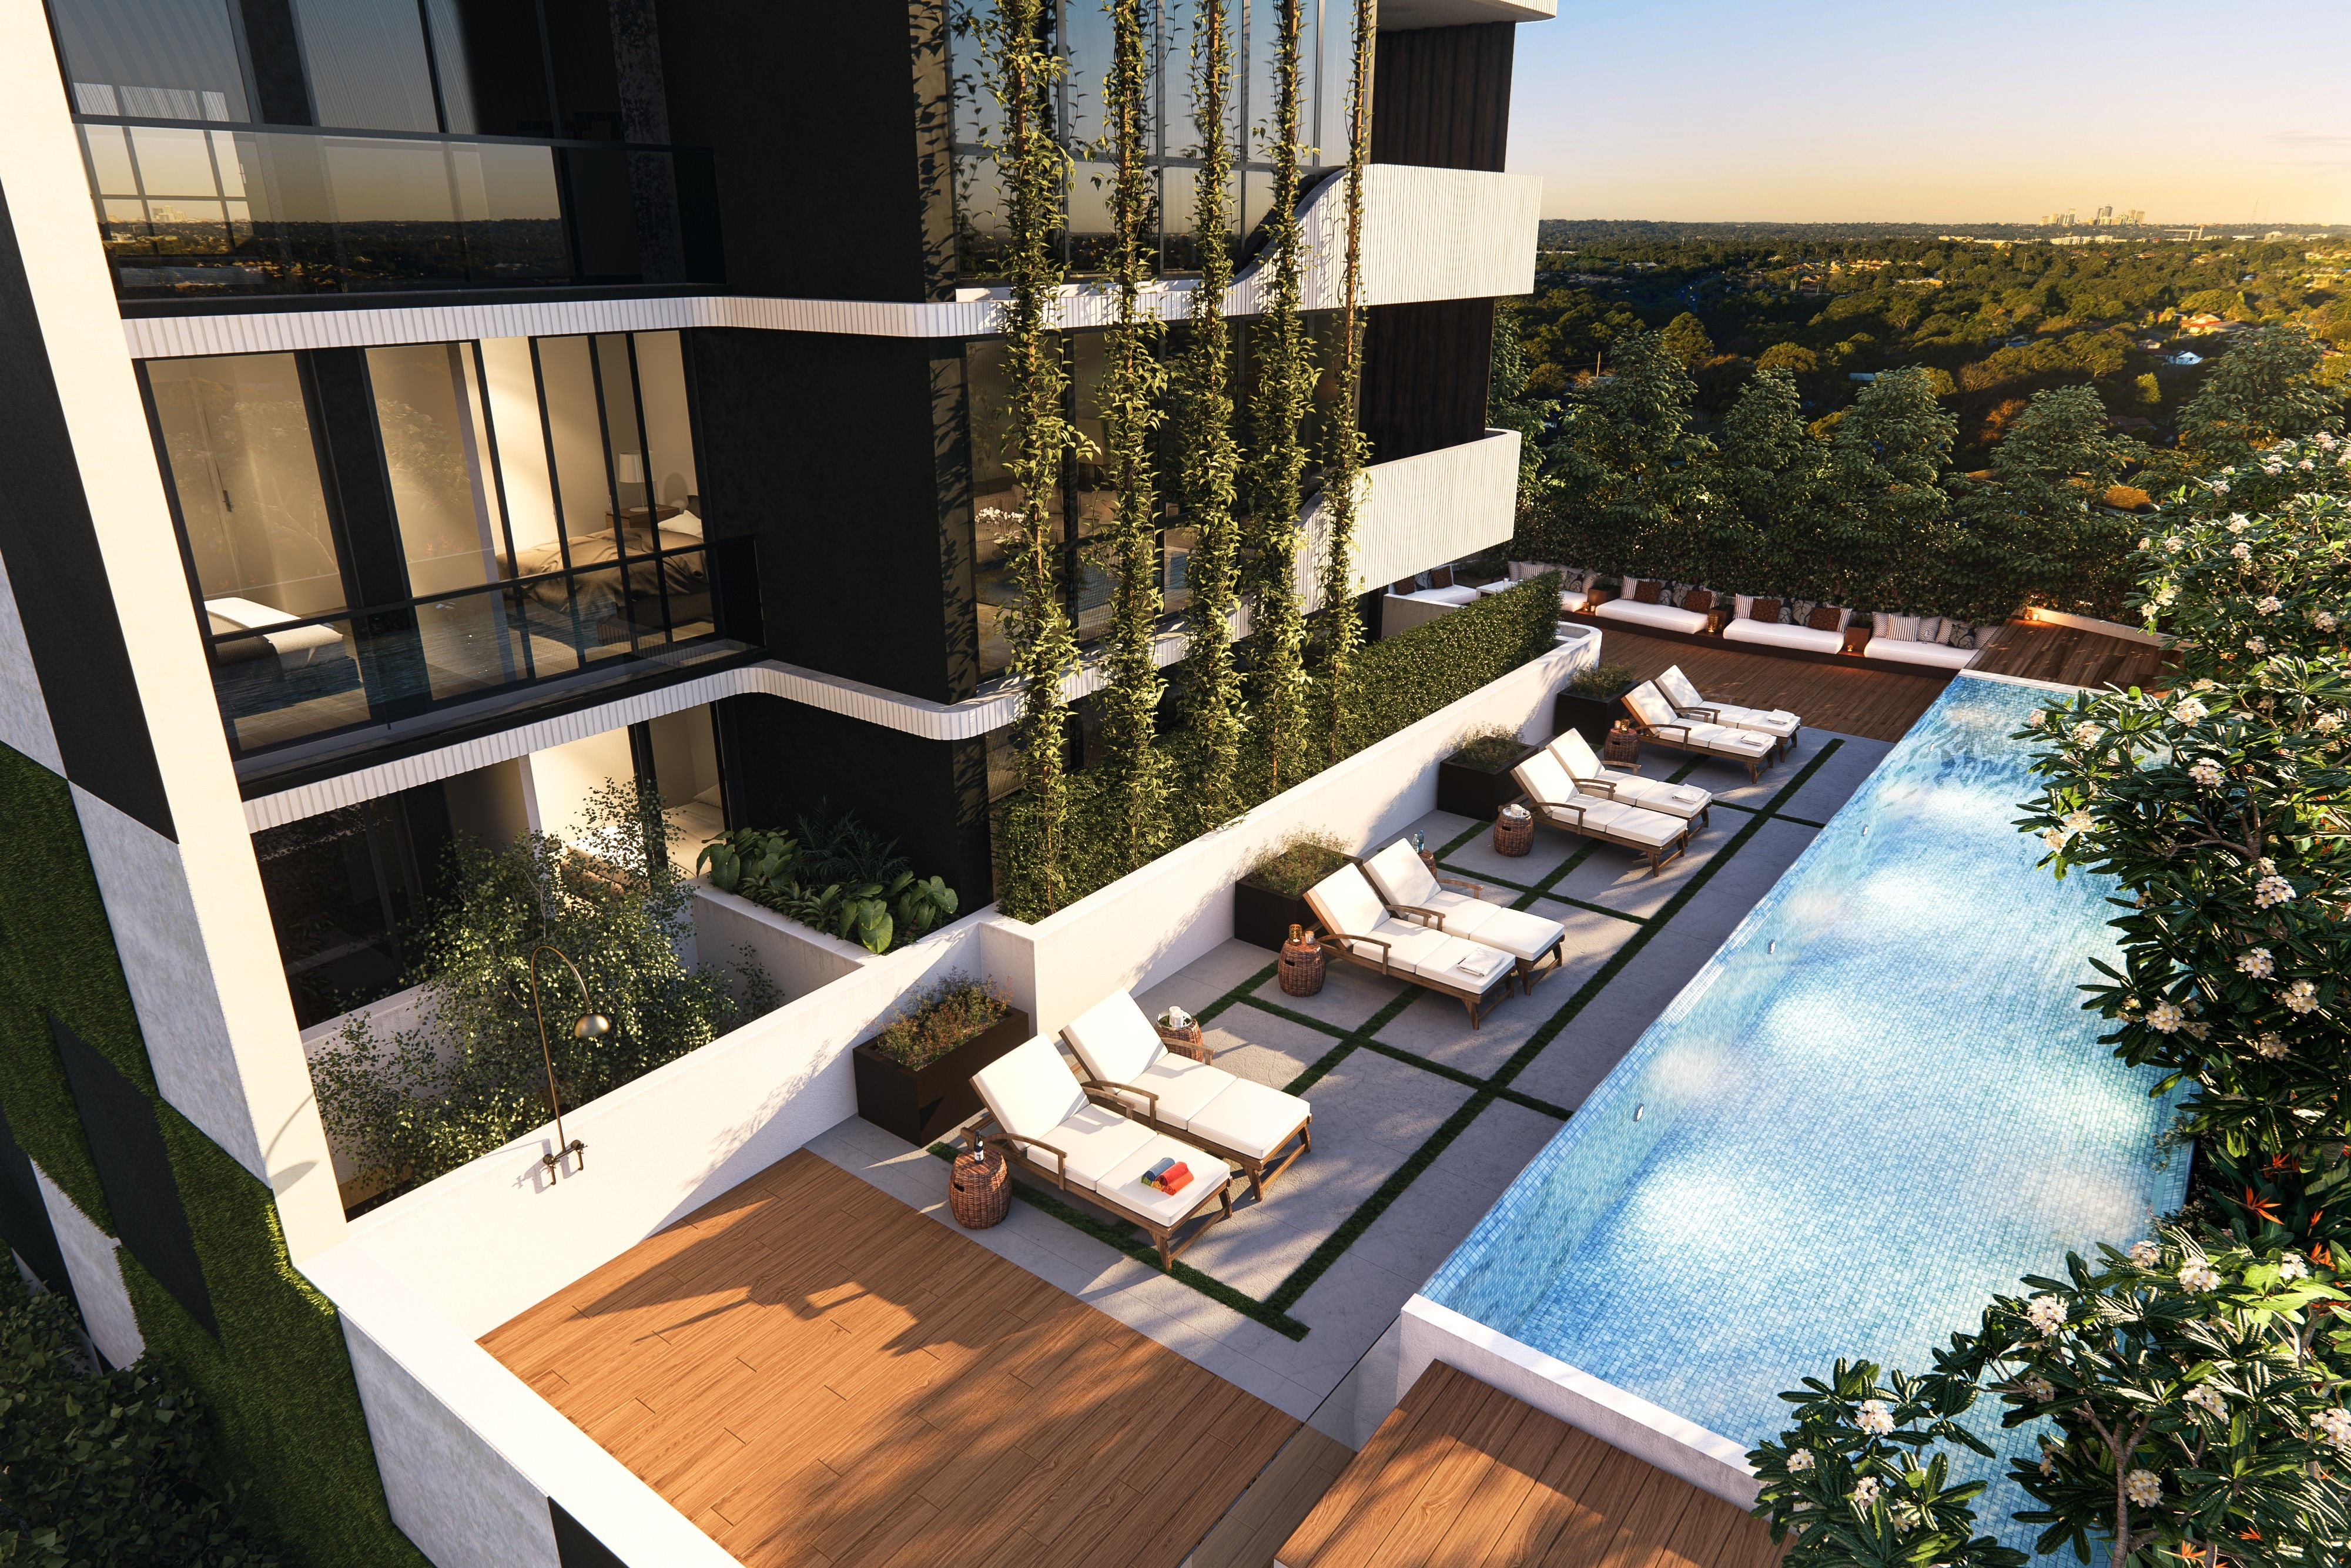 FINAL RELEASE - LAST CHANCE TO PURCHASE IN EPPING'S MOST EXCLUSIVE NEW RESIDENTIAL TOWER – Jardine Residences